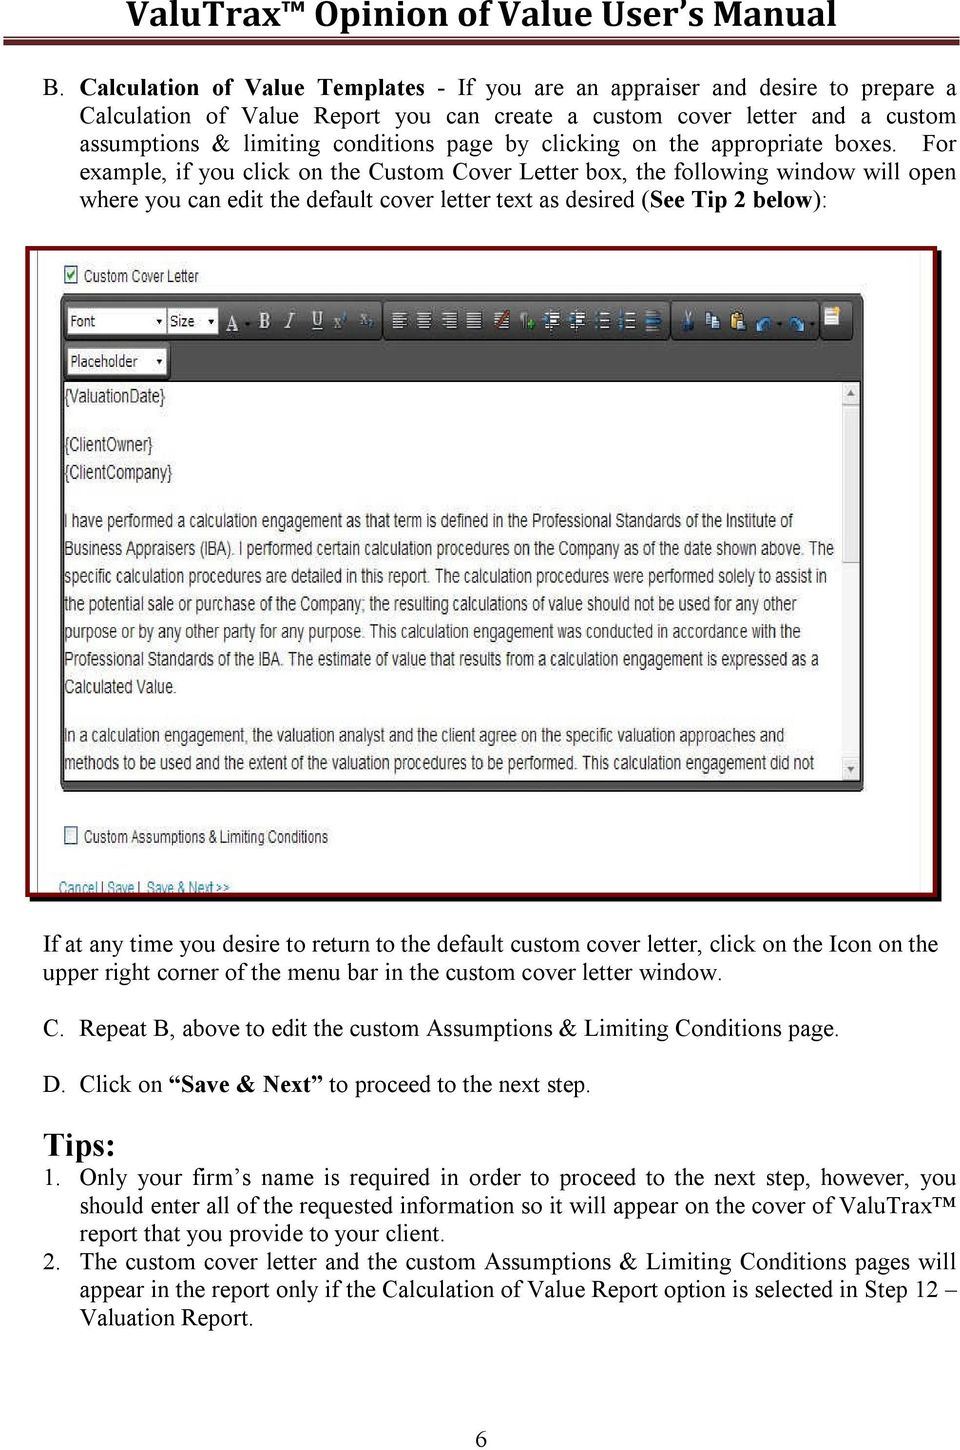 For example, if you click on the Custom Cover Letter box, the following  window